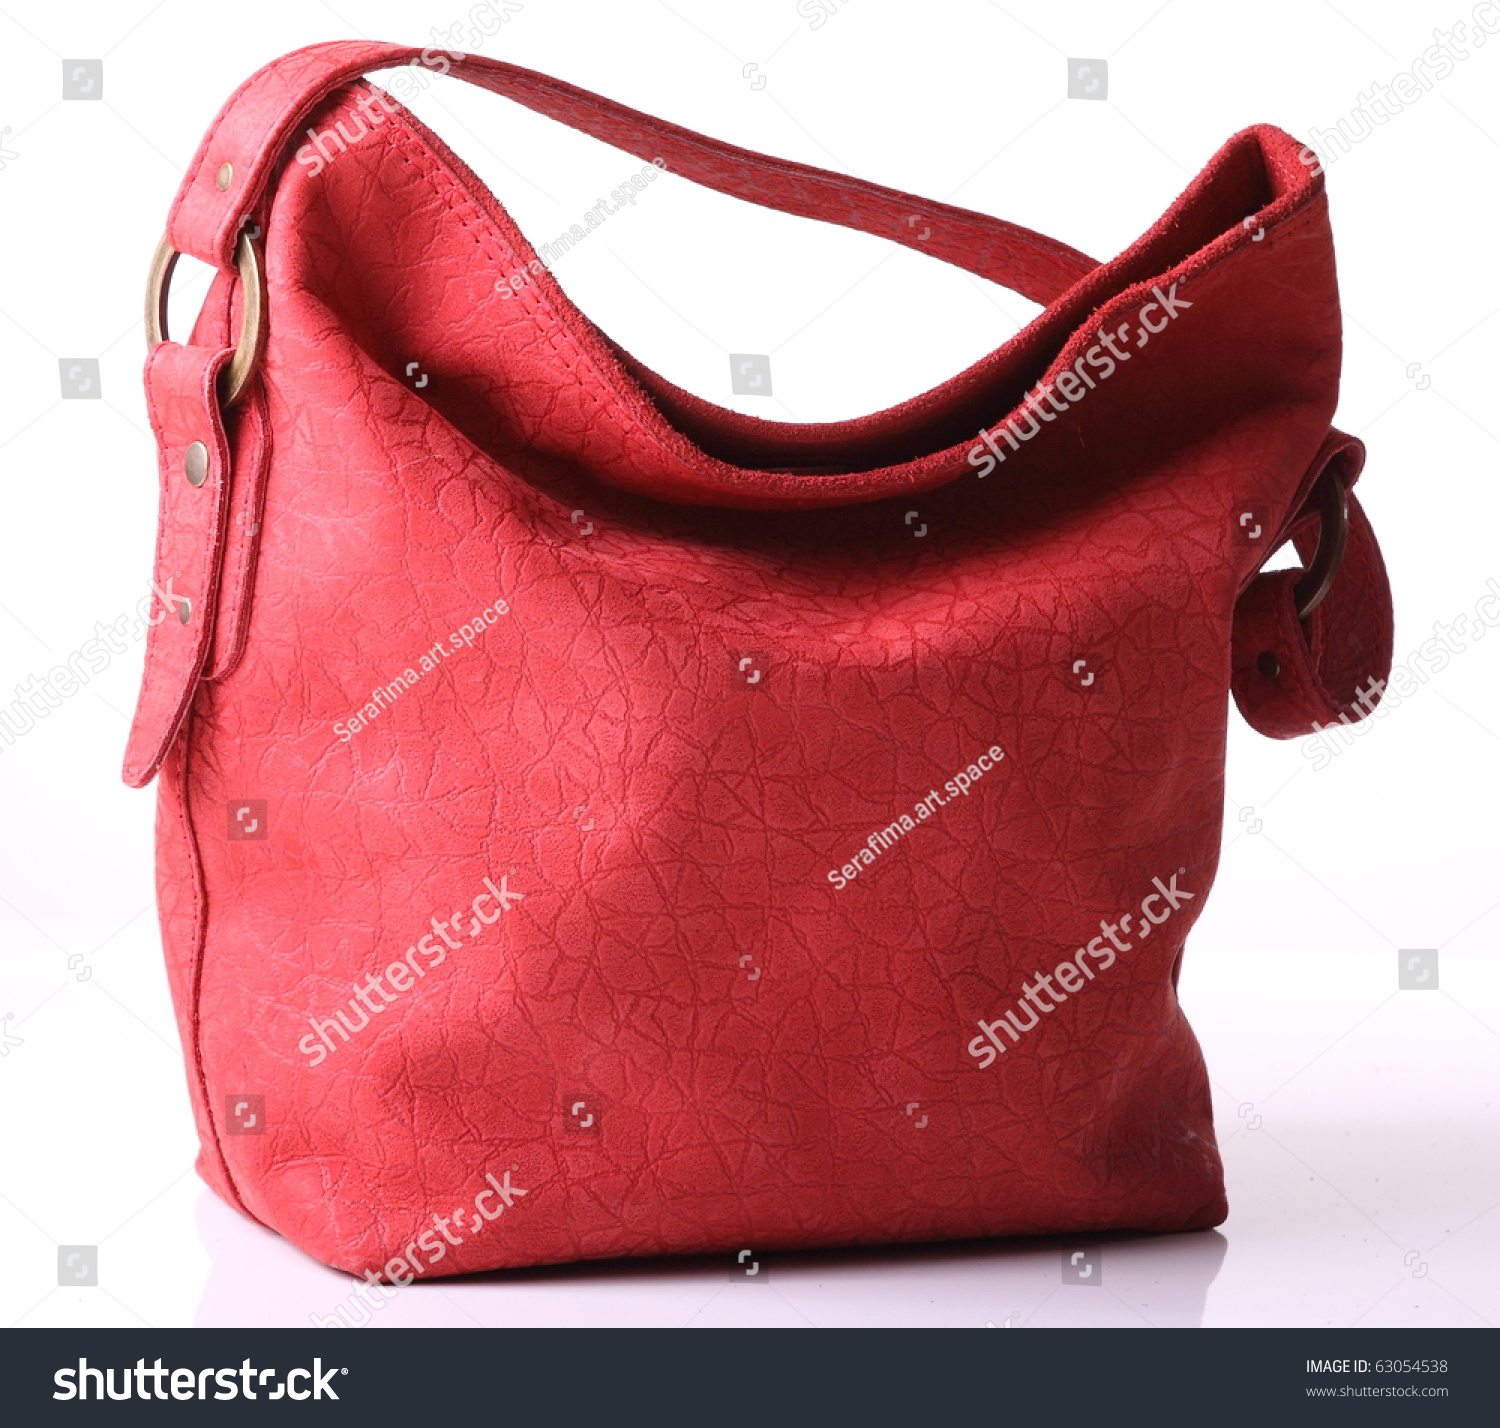 Red Leather Bag Stock Photo 63054538 - Shutterstock